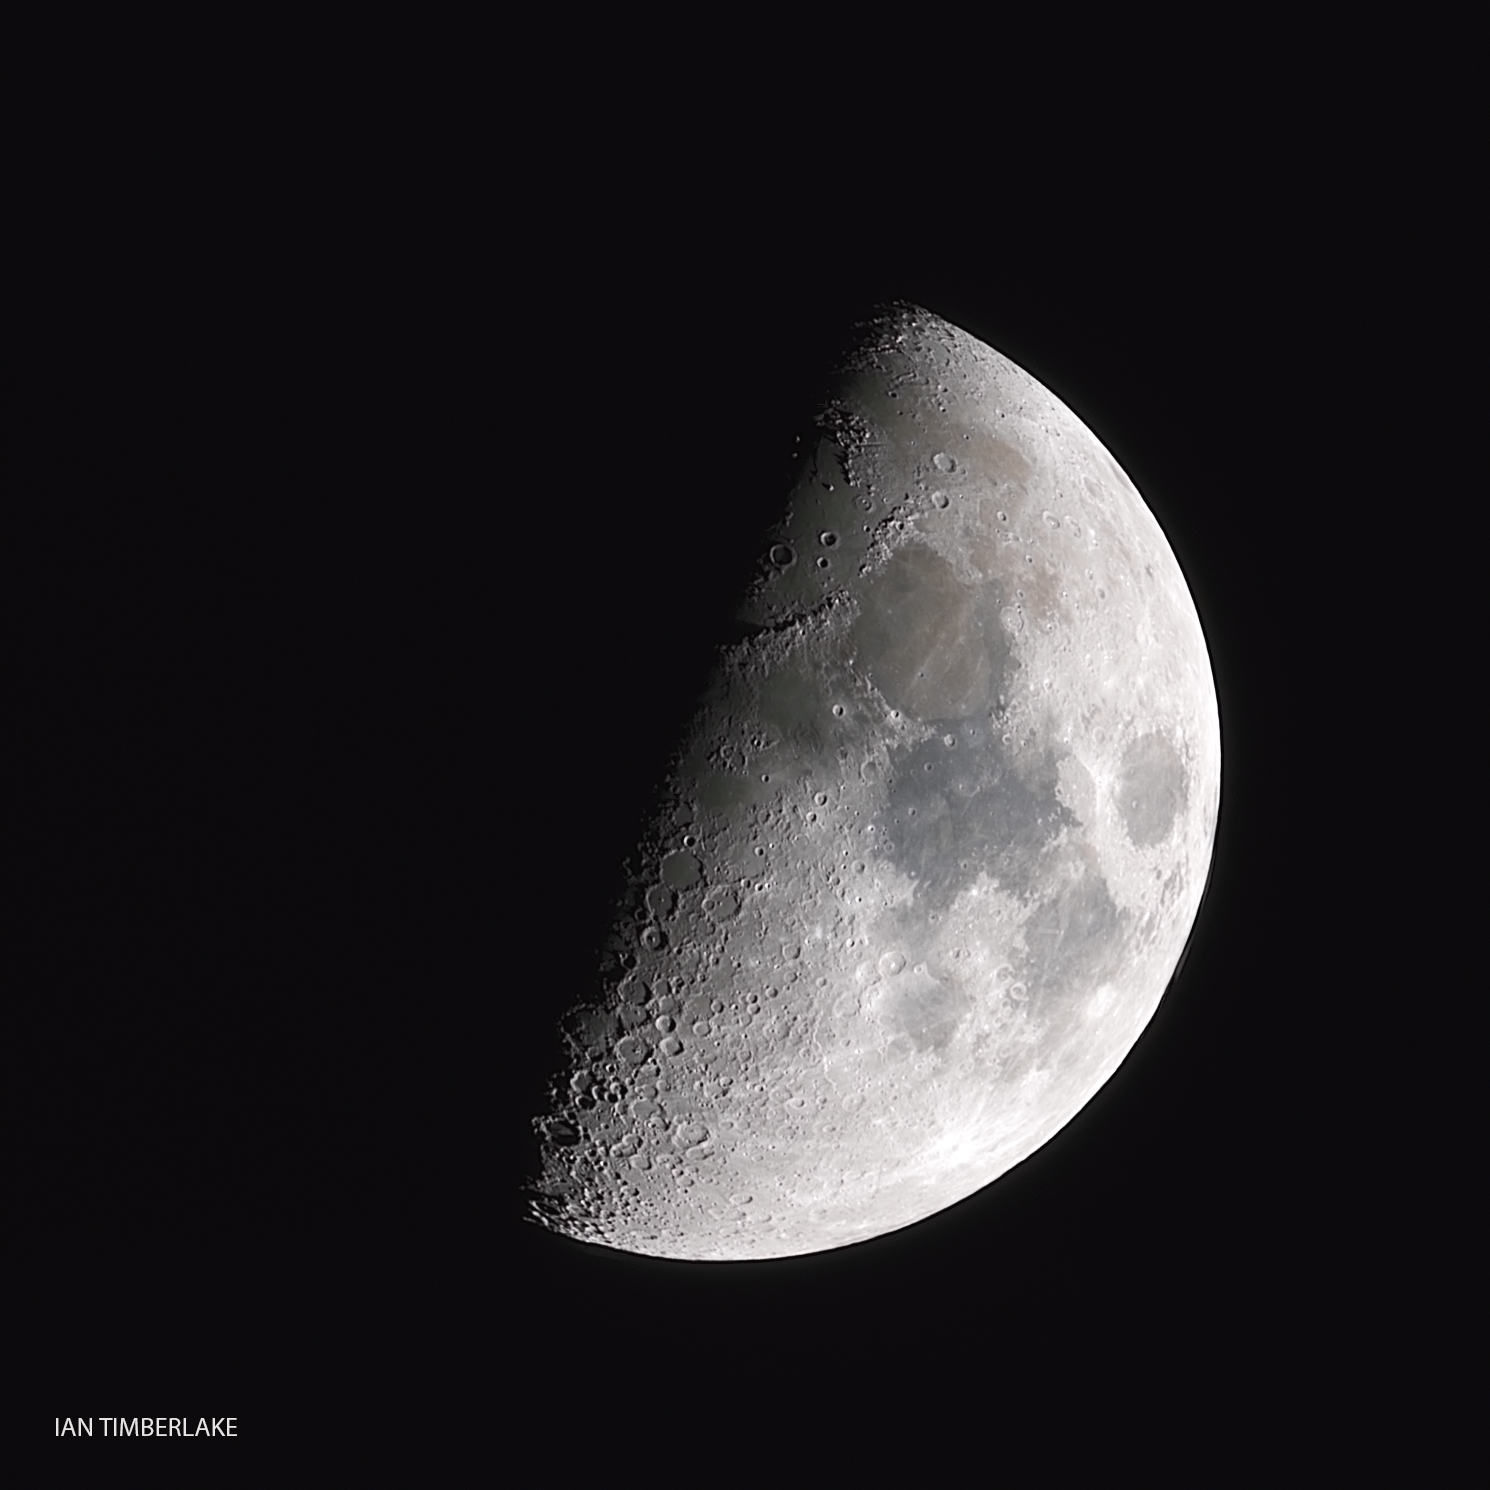 Half Moon photograph stack using many exposures and various programs.